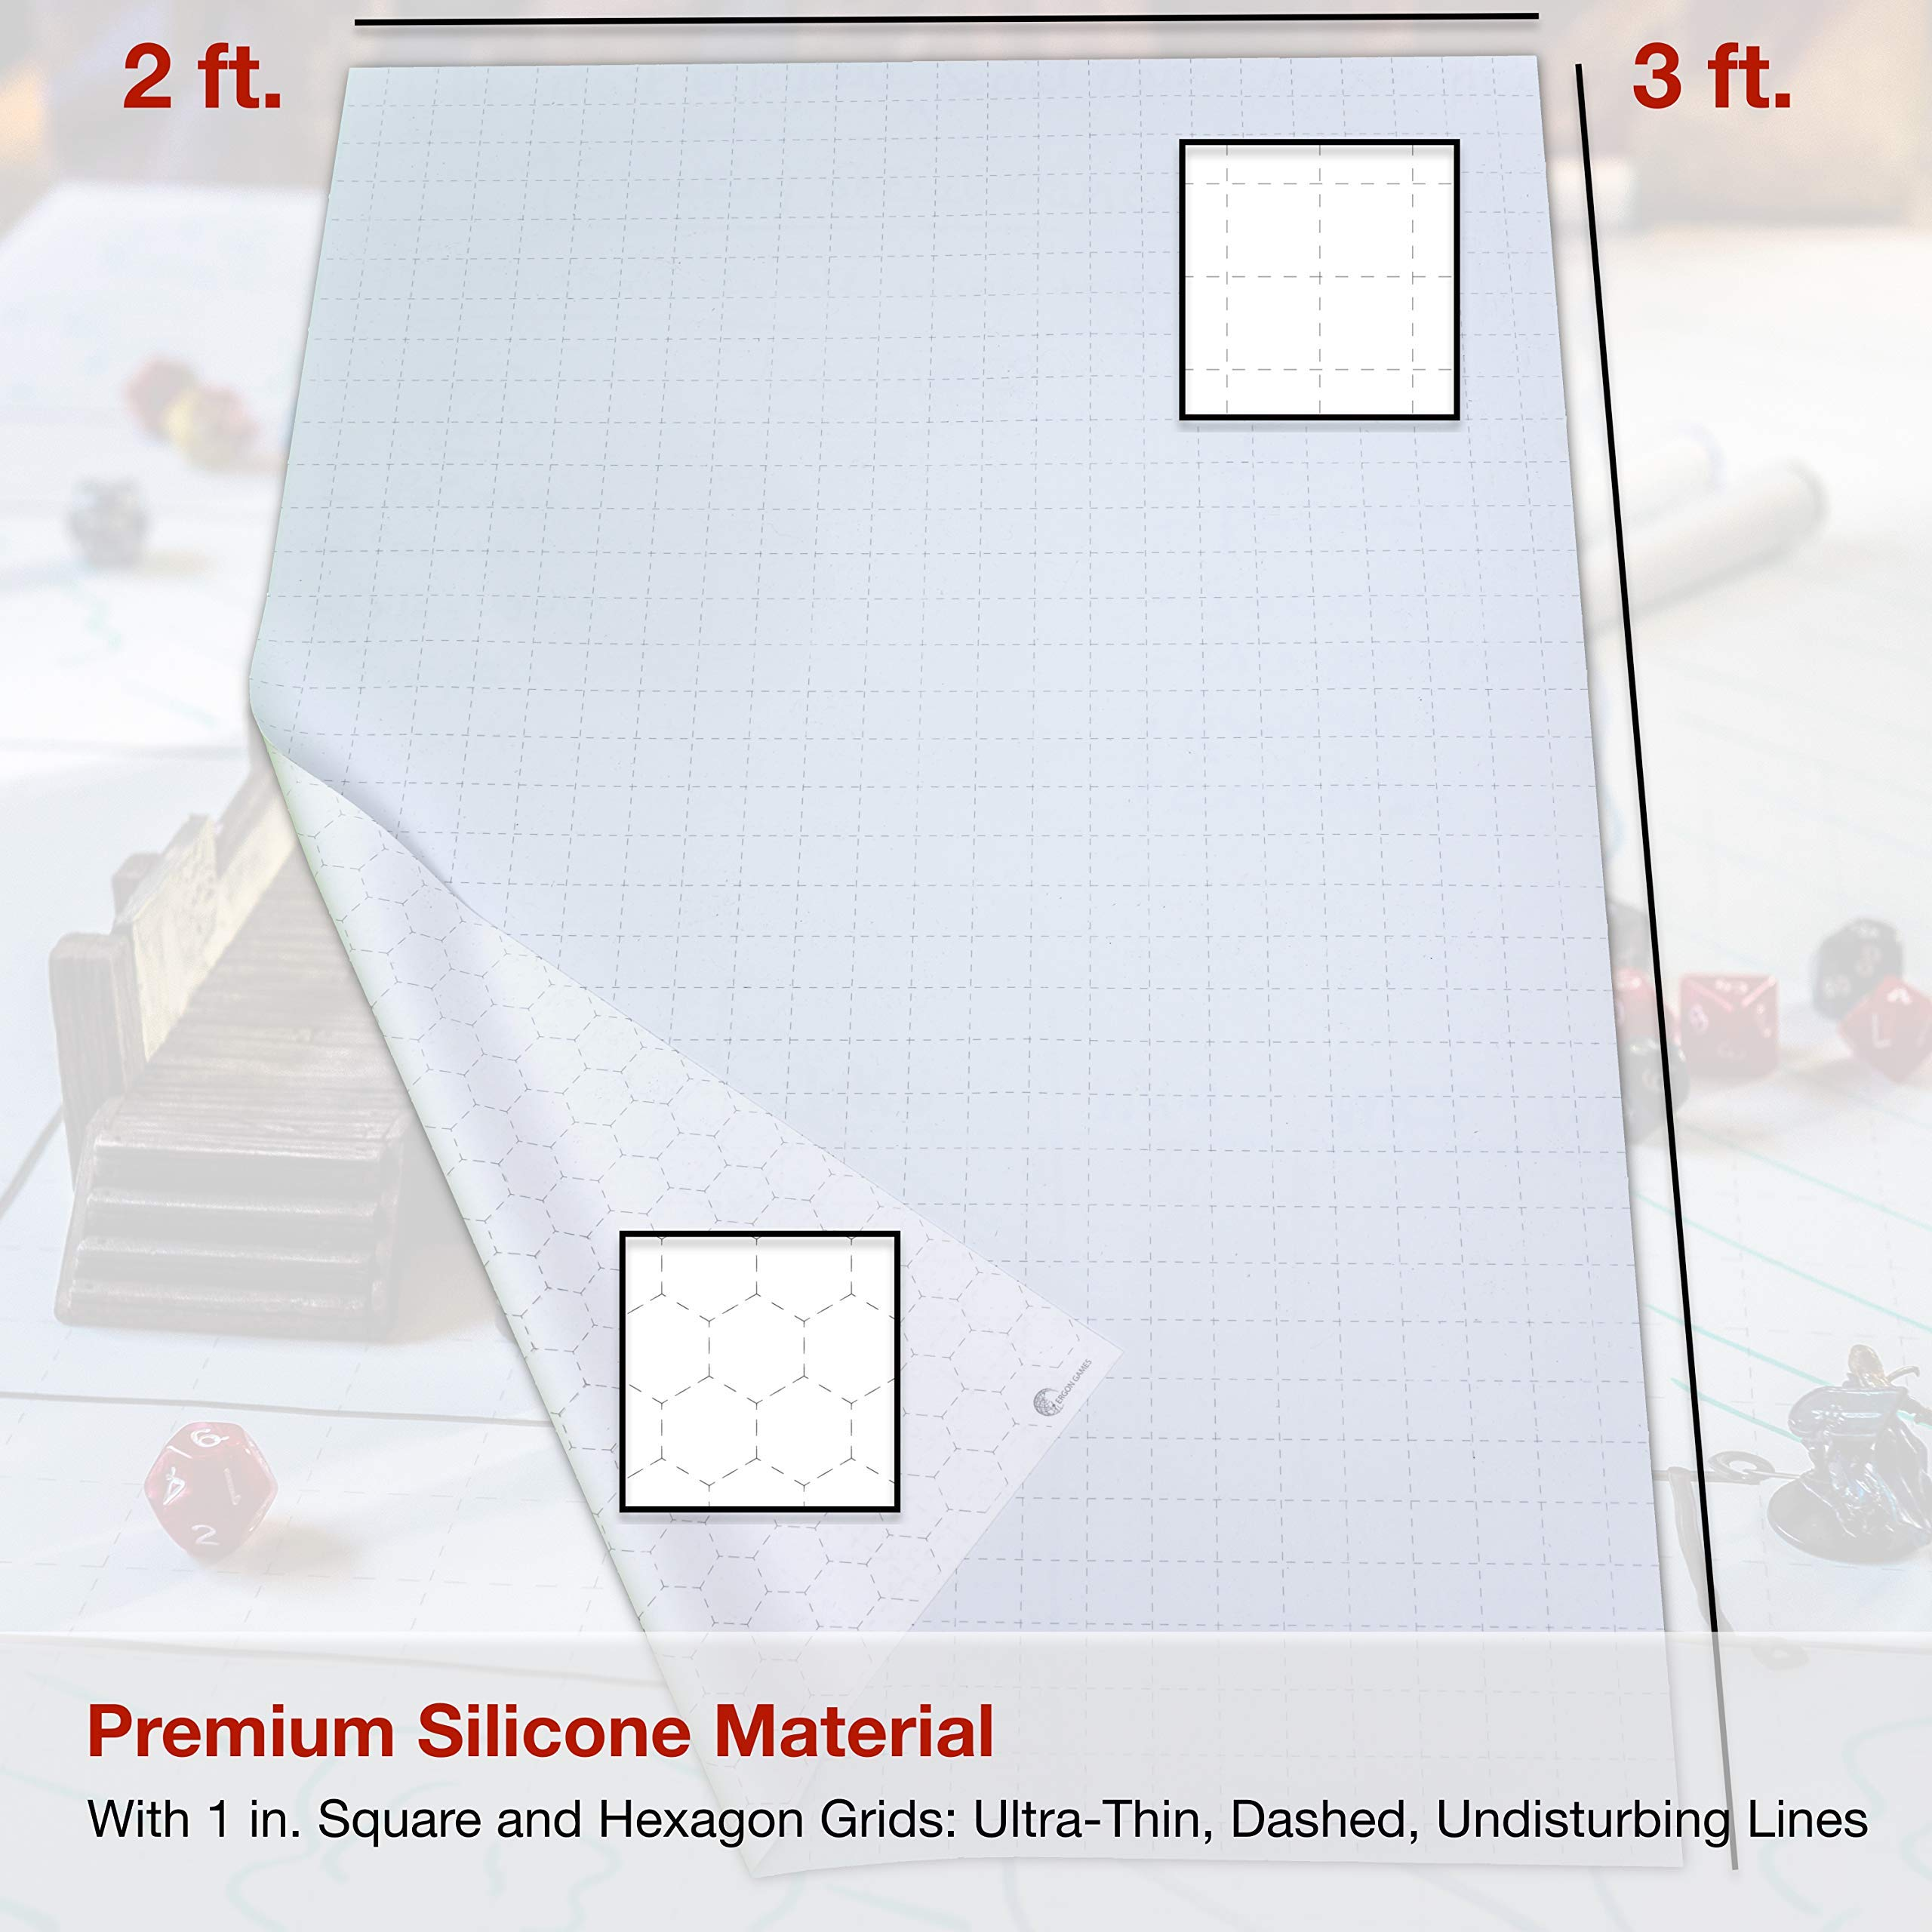 Battle / Game Mat for DnD / D & D Map | Dry Erase, Non-Staining SILICONE, Fold/Rollable, Non-Crease | 1 inch Square / Hex Grid | 3 x 2 ft. | Play Dungeons and Dragons, Warhammer 40k, RPG Tabletop by Ergon Games (Image #6)